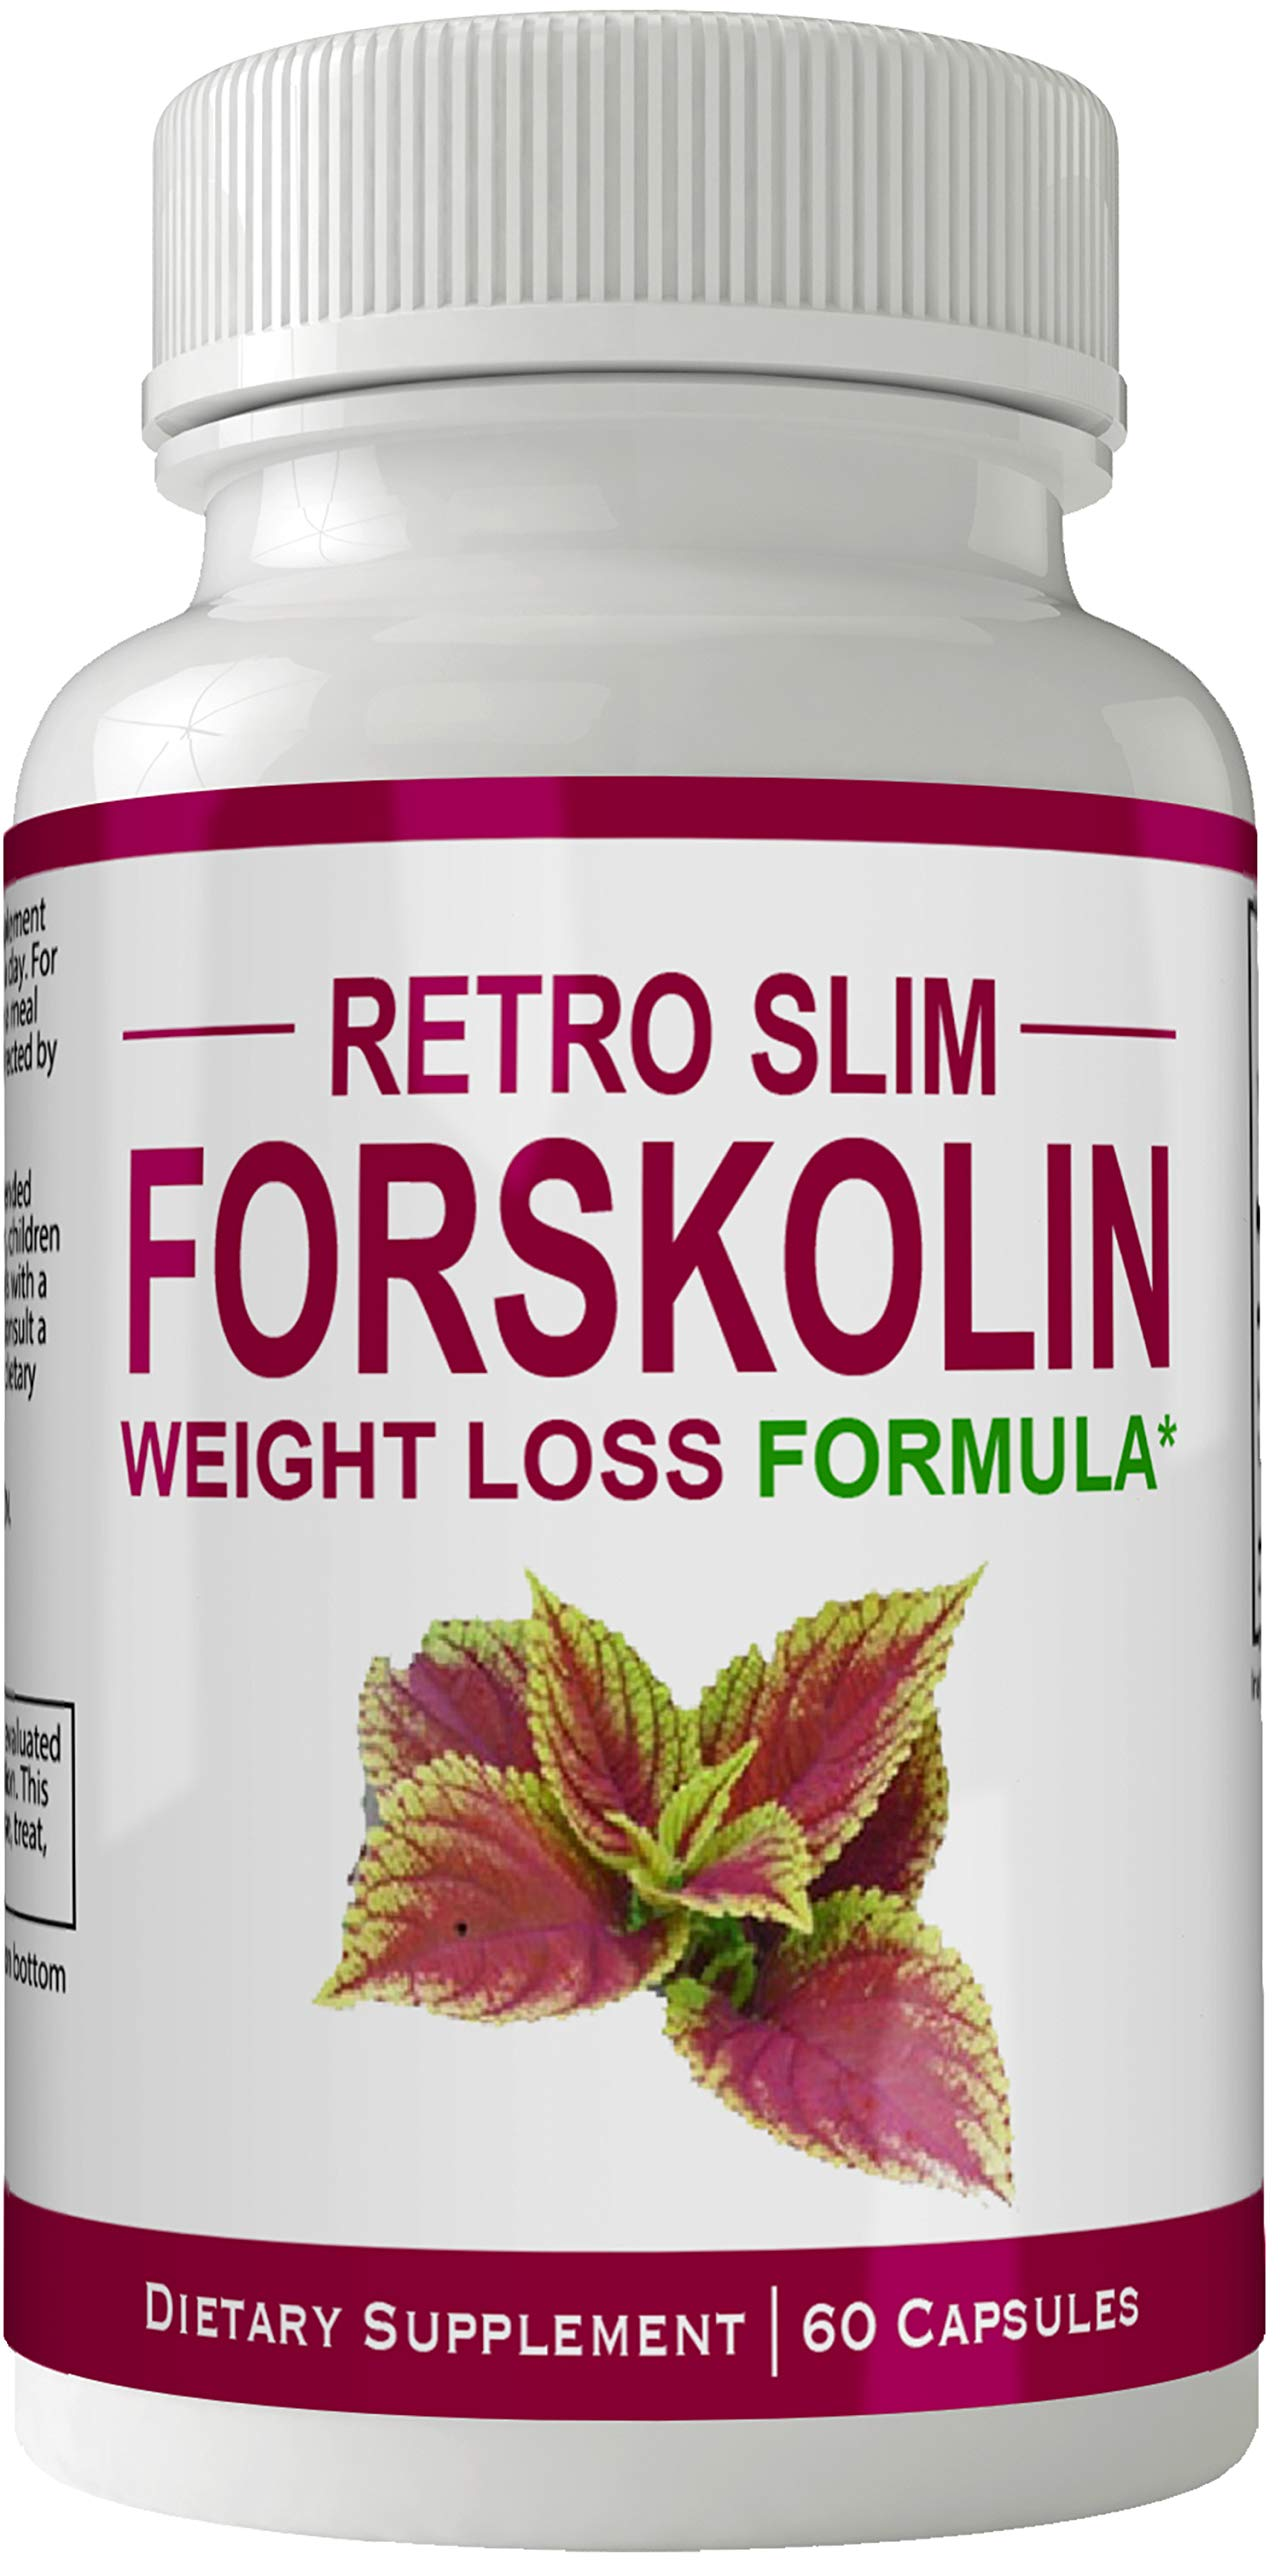 Retro Slim Forskolin for Weight Loss Pills Tablets Supplement - Capsules with Natural High Quality Pure Forskolin Extract Diet Pills